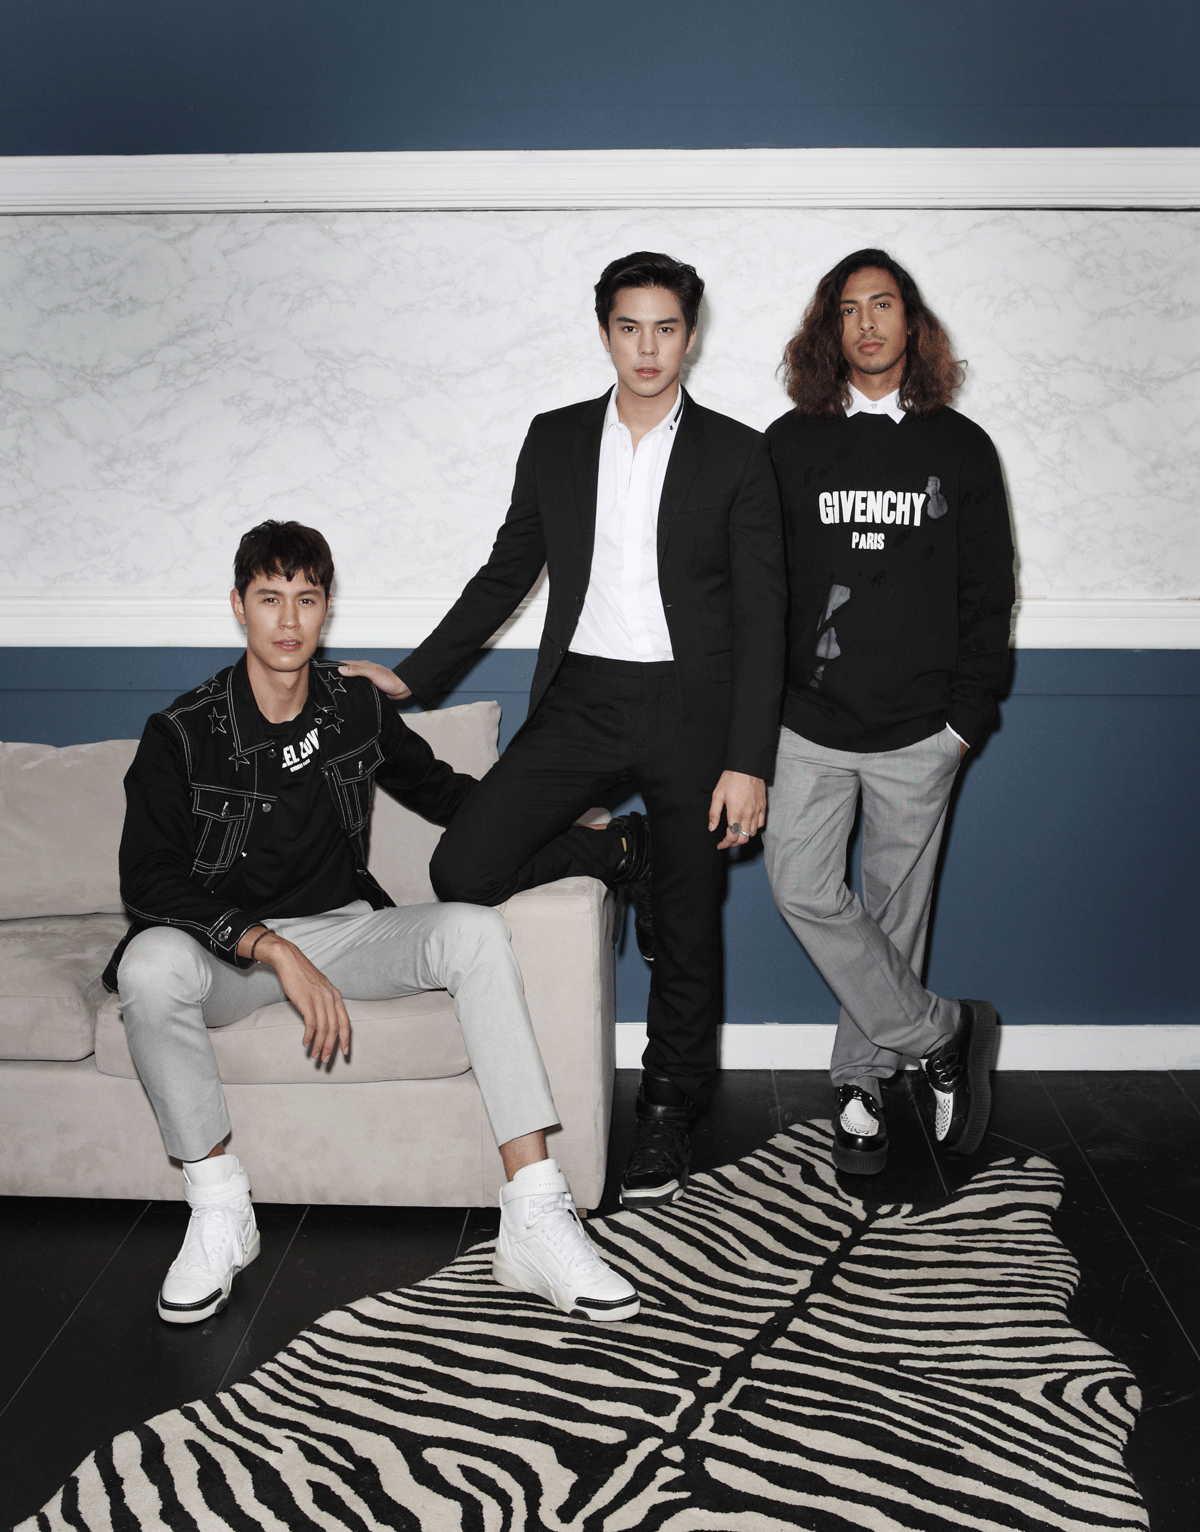 Mentor Peach , Man and Joseph / all in GIVENCHY